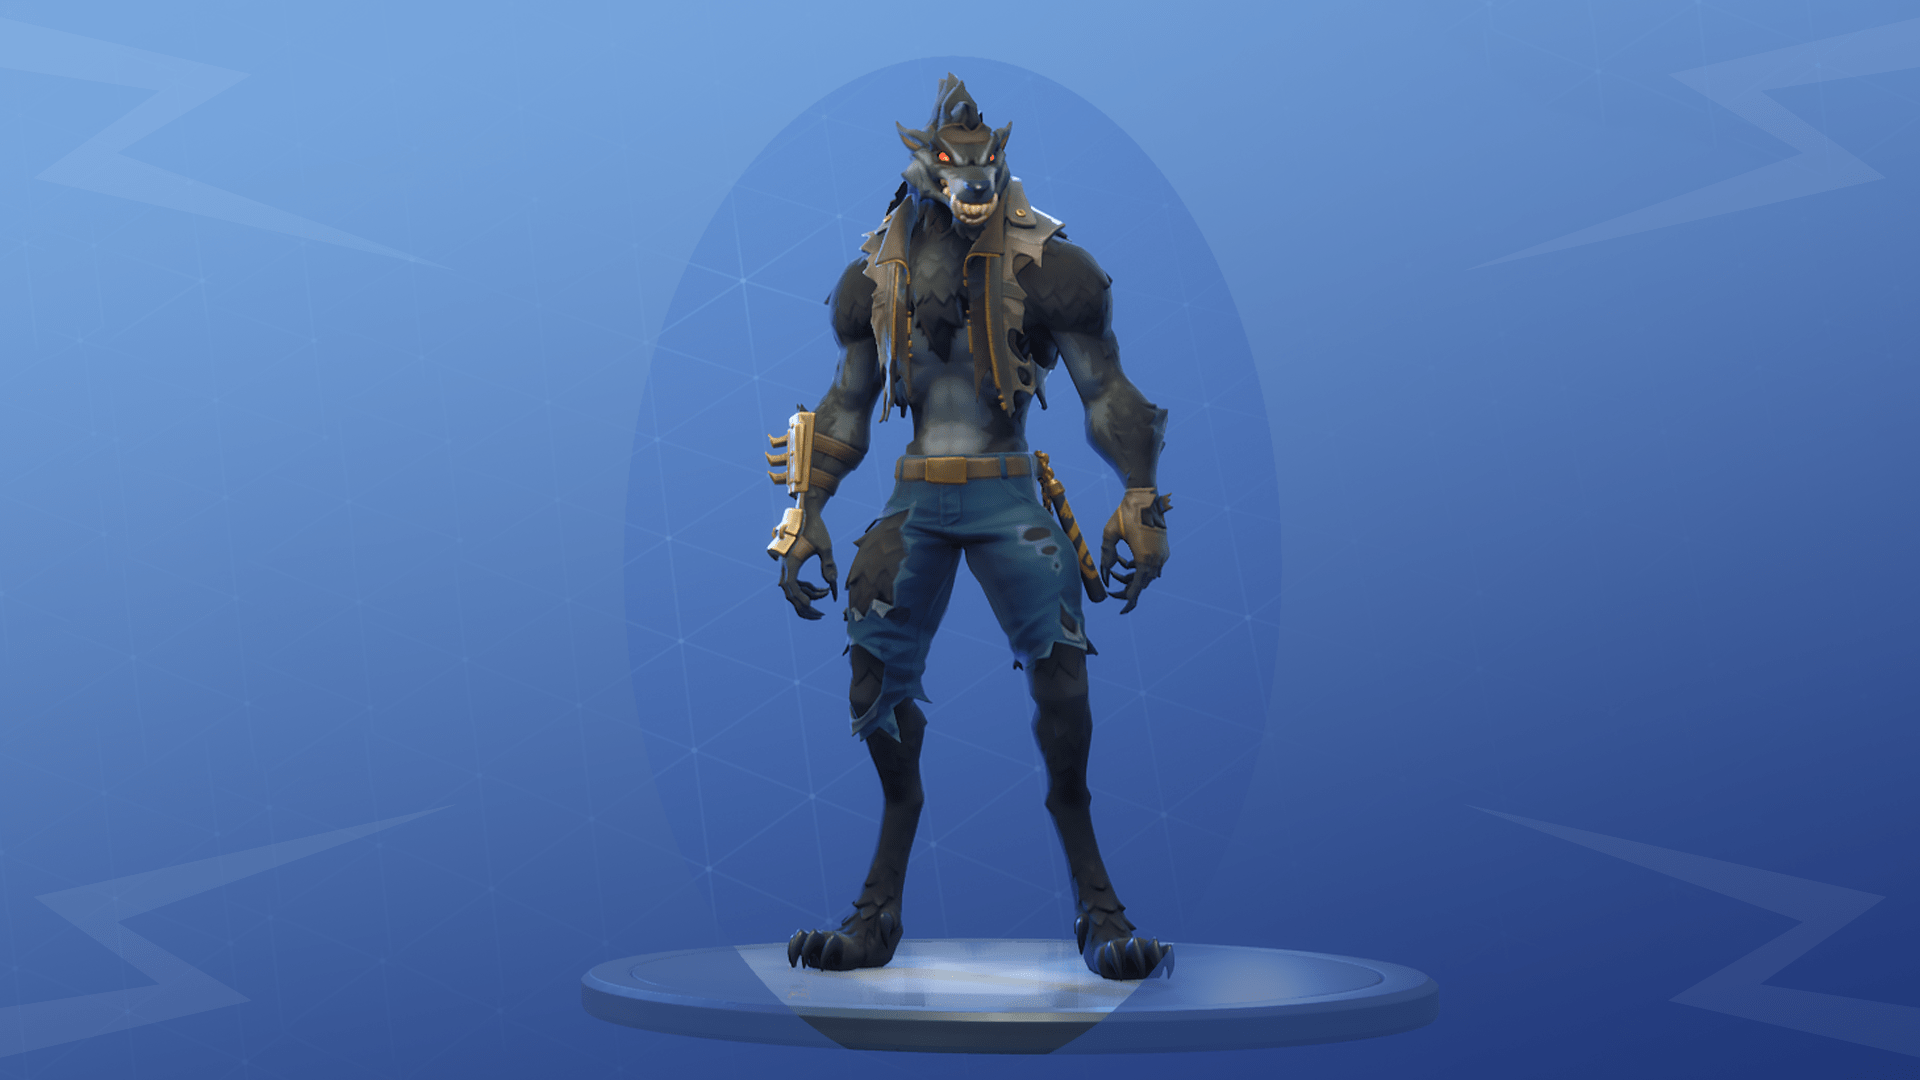 Dire Fortnite Wallpapers Top Free Dire Fortnite Backgrounds